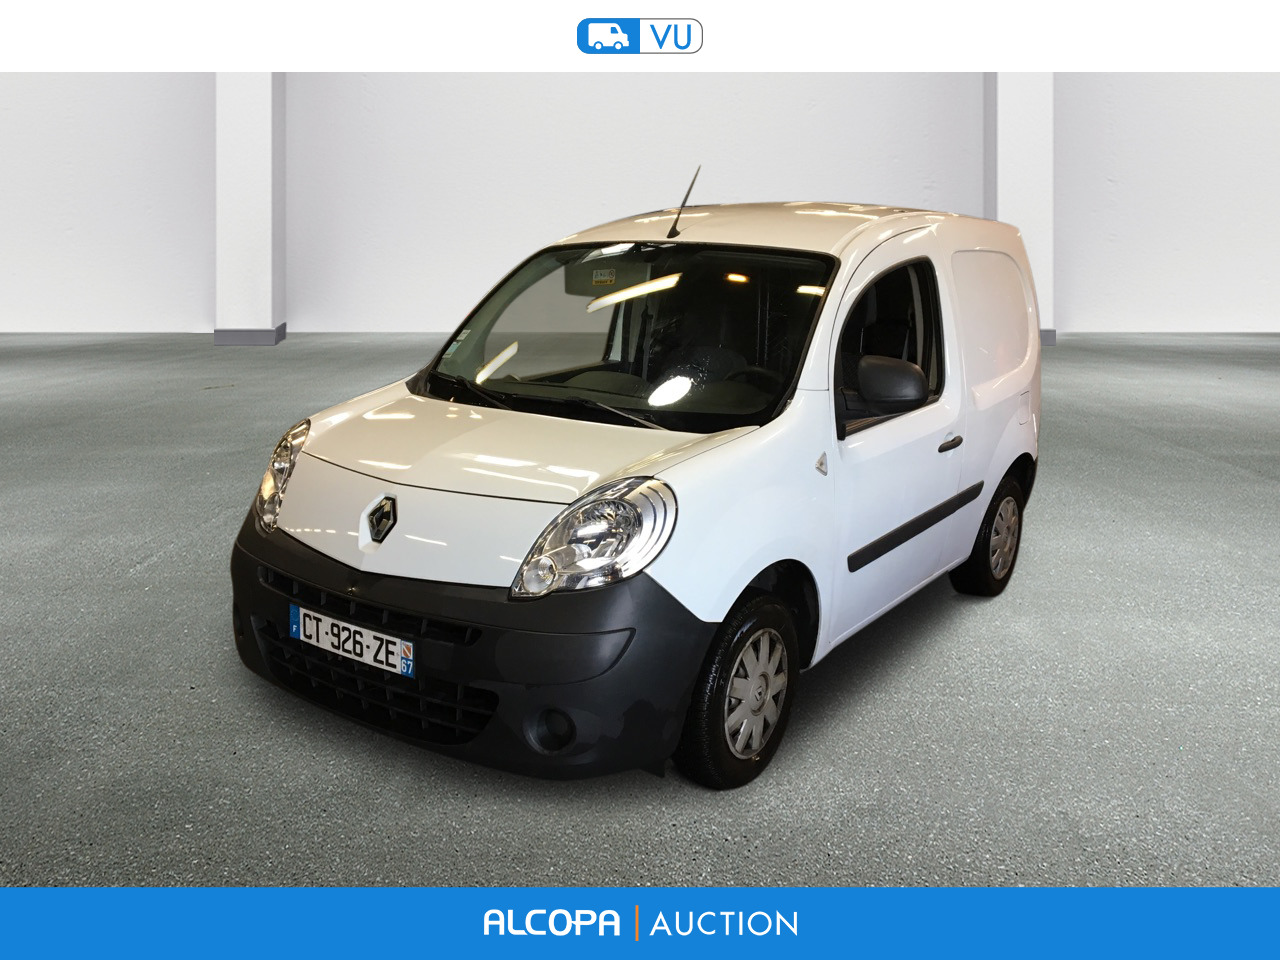 renault kangoo kangoo express compact extra dci90 alcopa auction. Black Bedroom Furniture Sets. Home Design Ideas